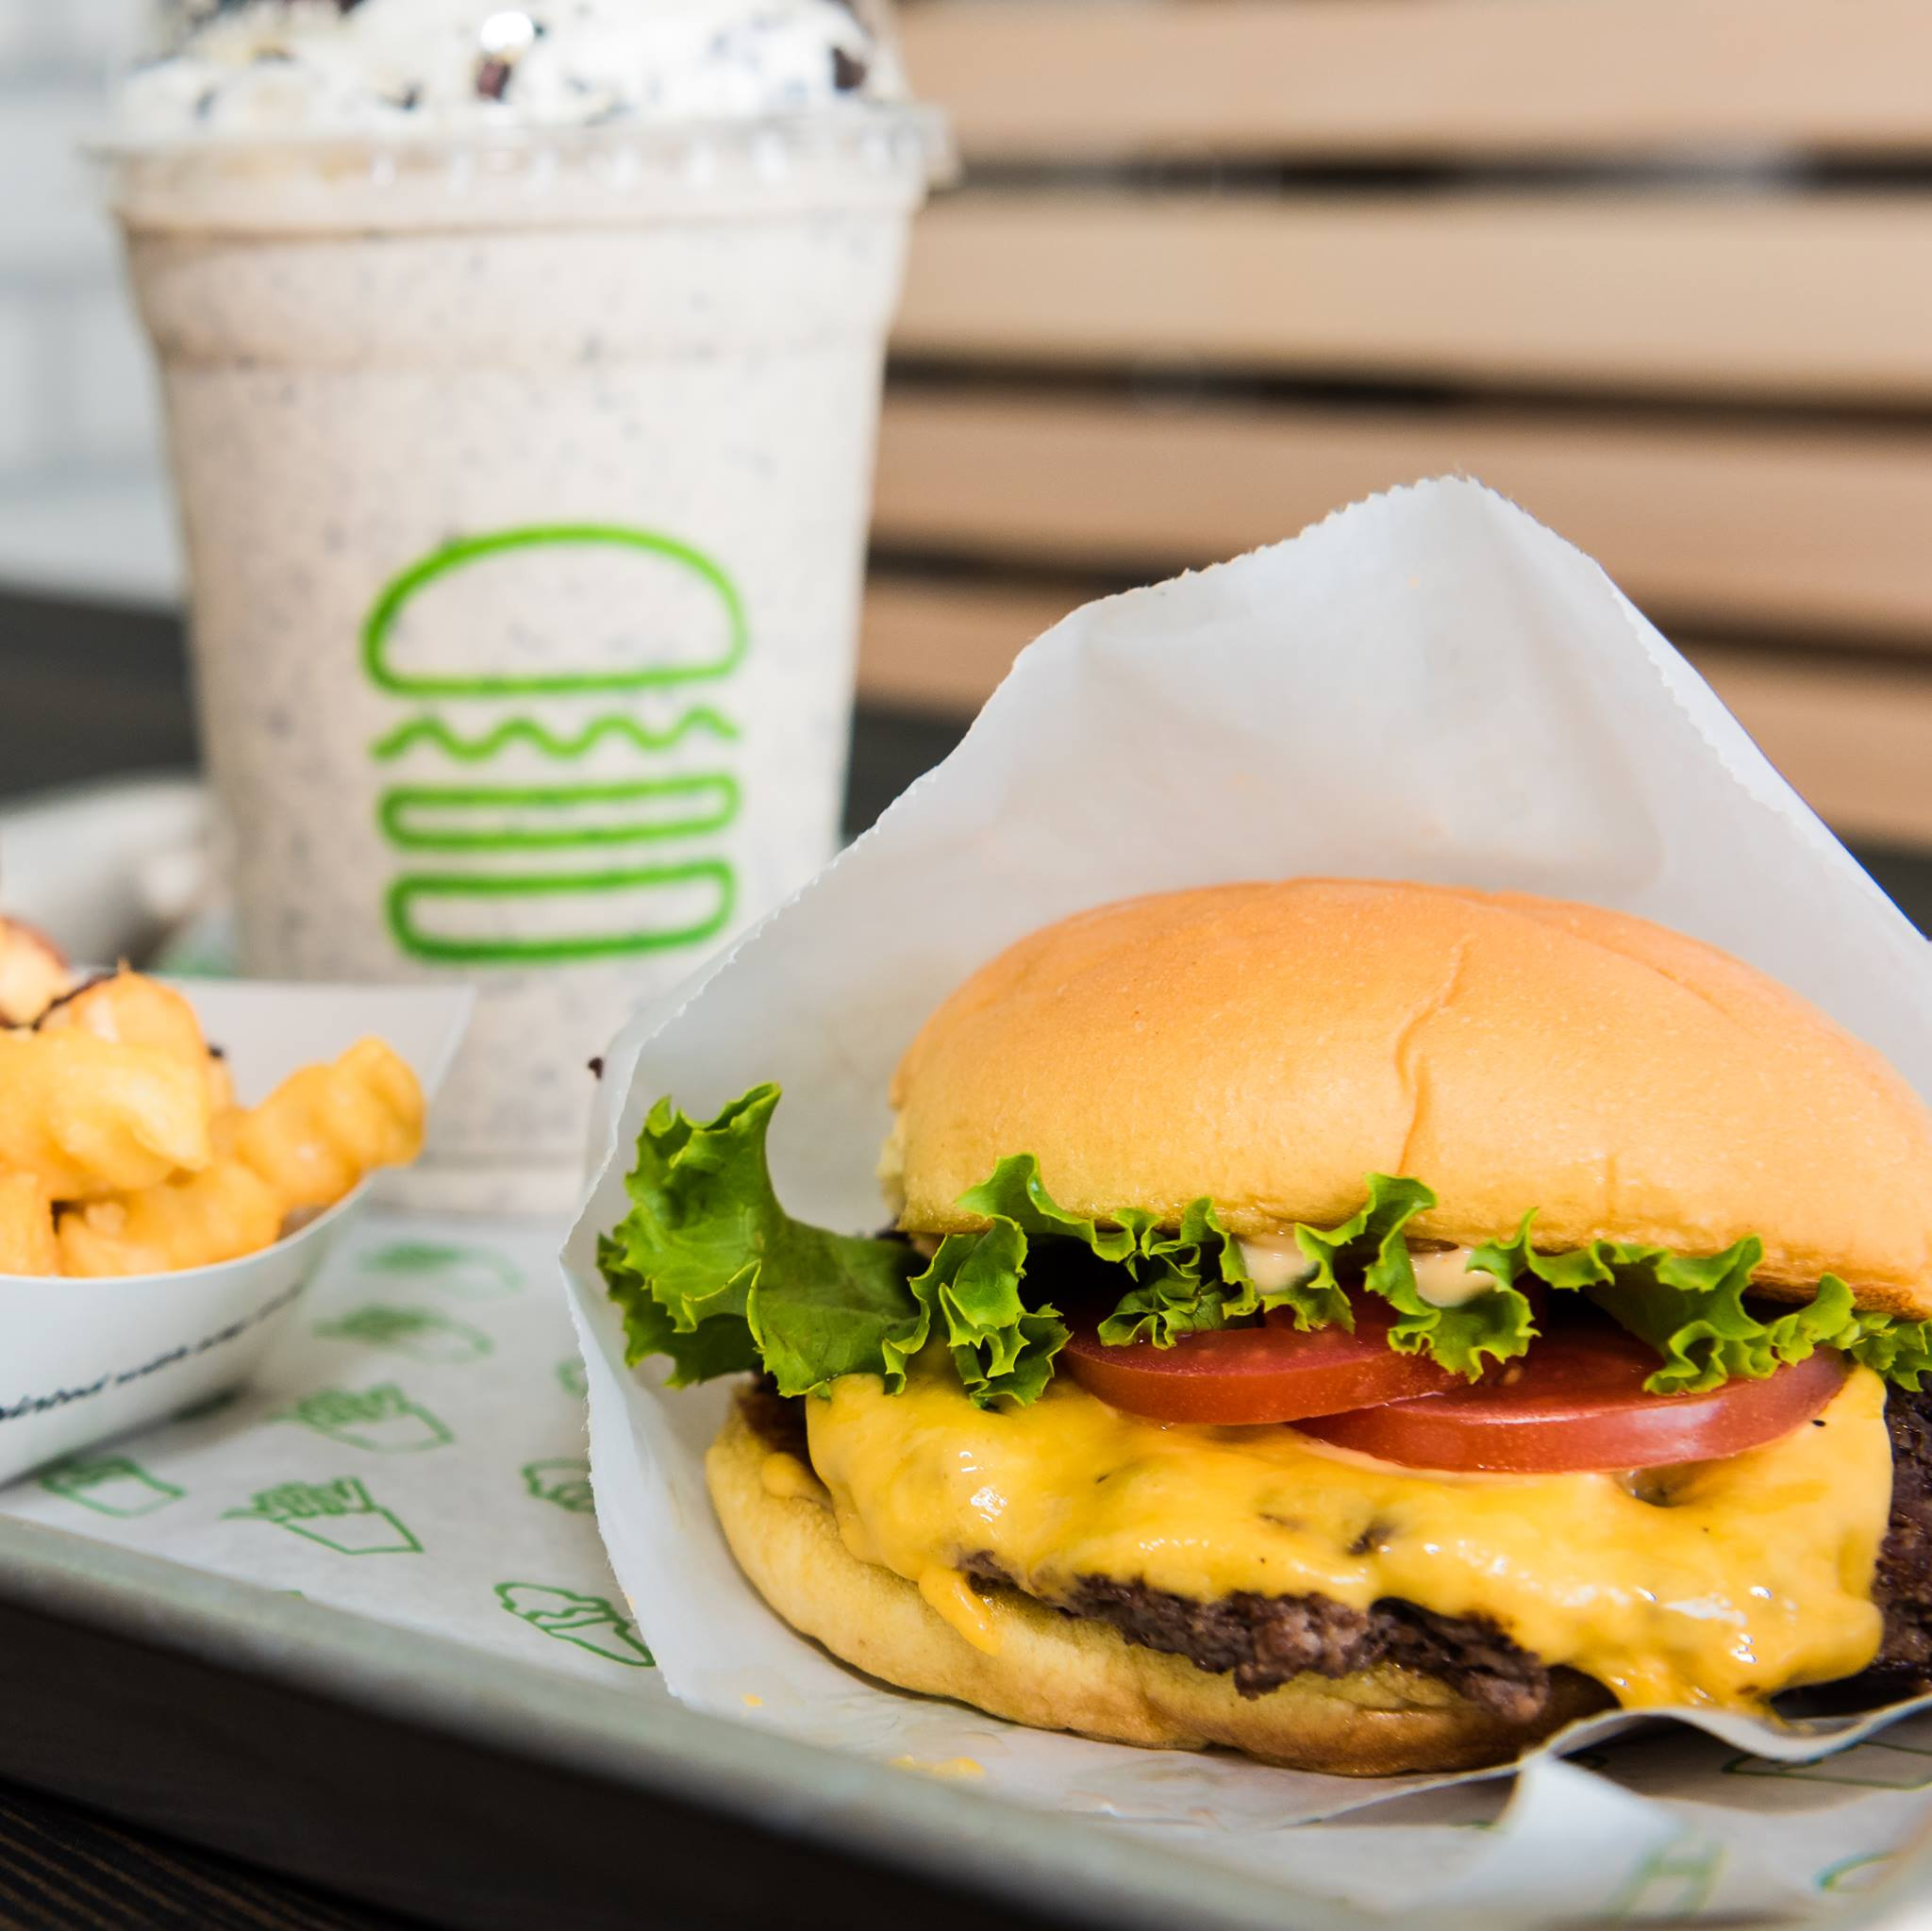 Shake Shack's ShackBurger